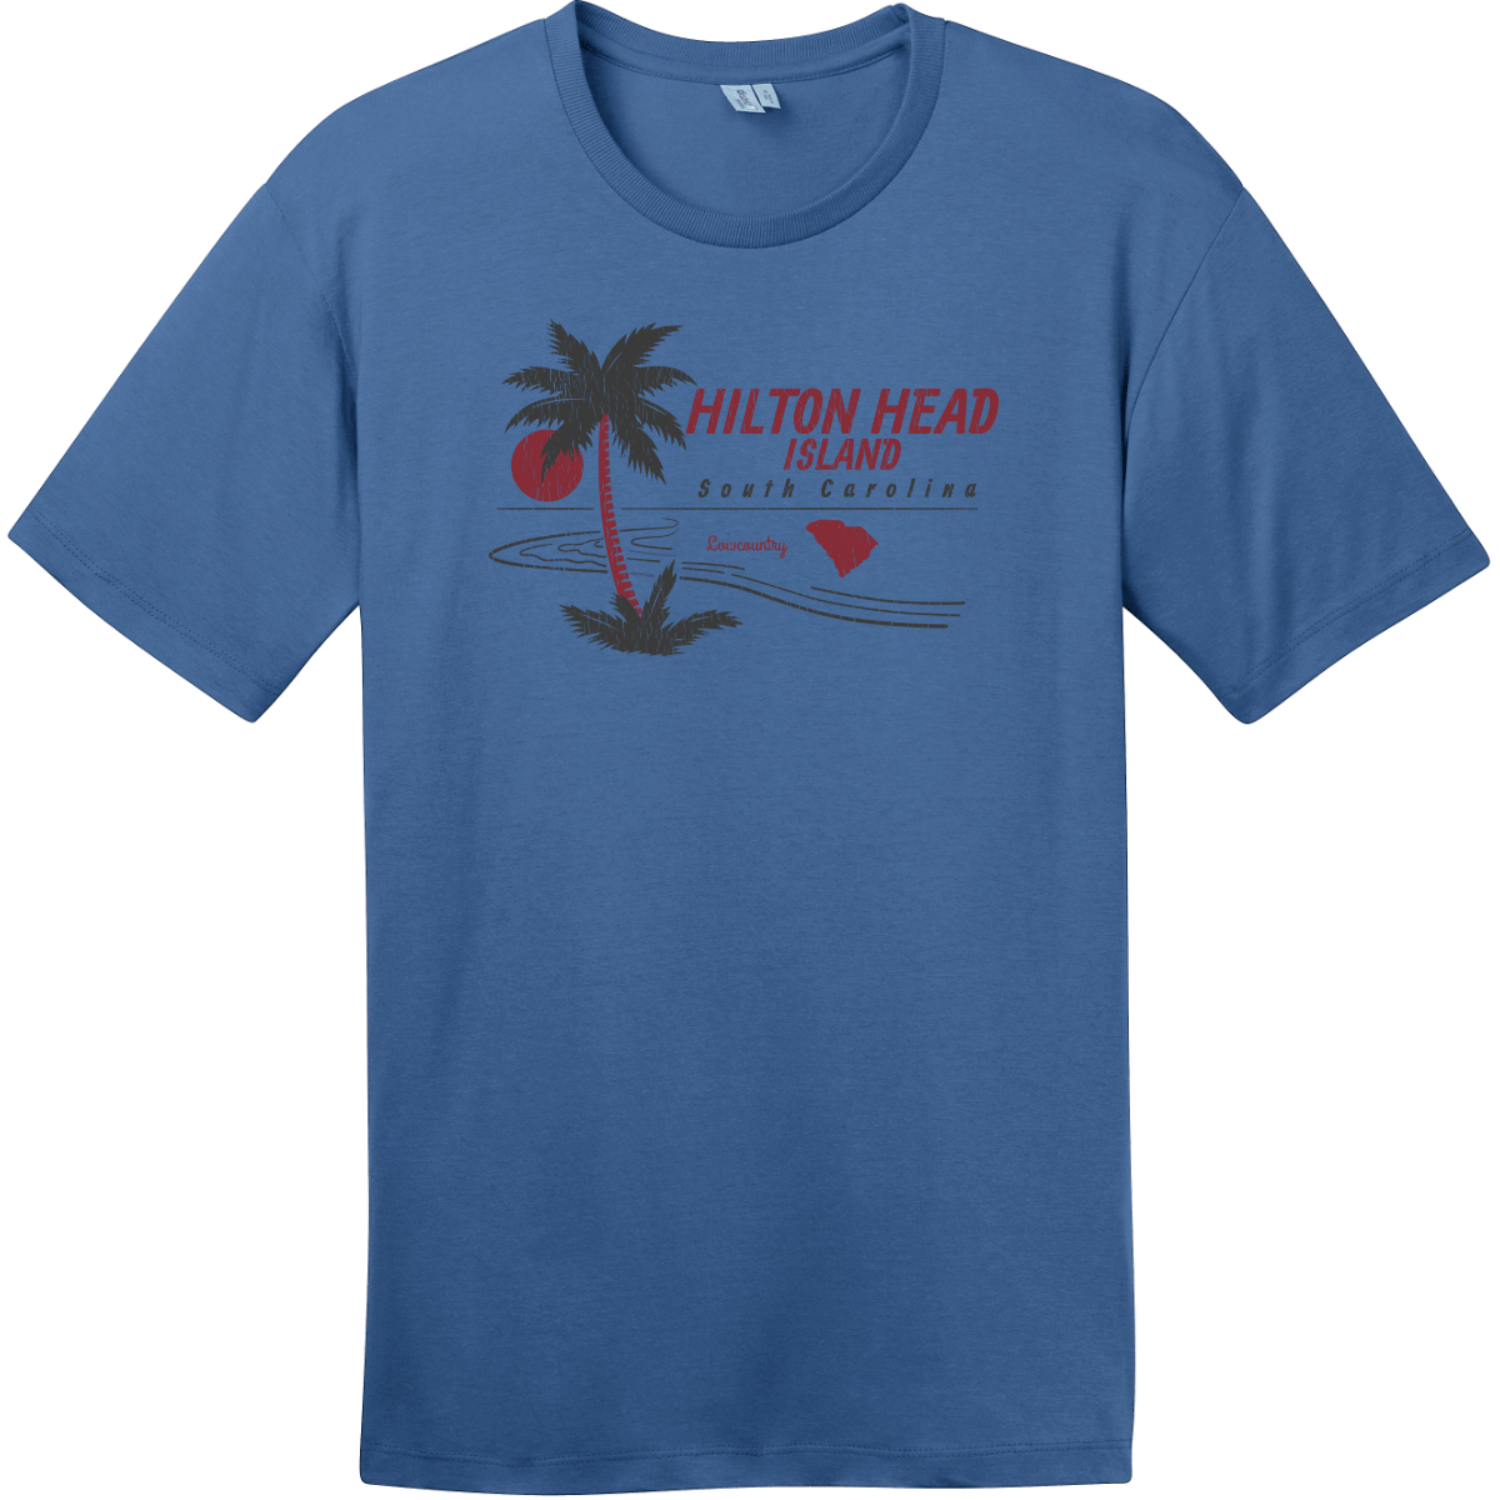 Hilton Head Island Lowcountry T-Shirt Maritime Blue District Perfect Weight Tee DT104